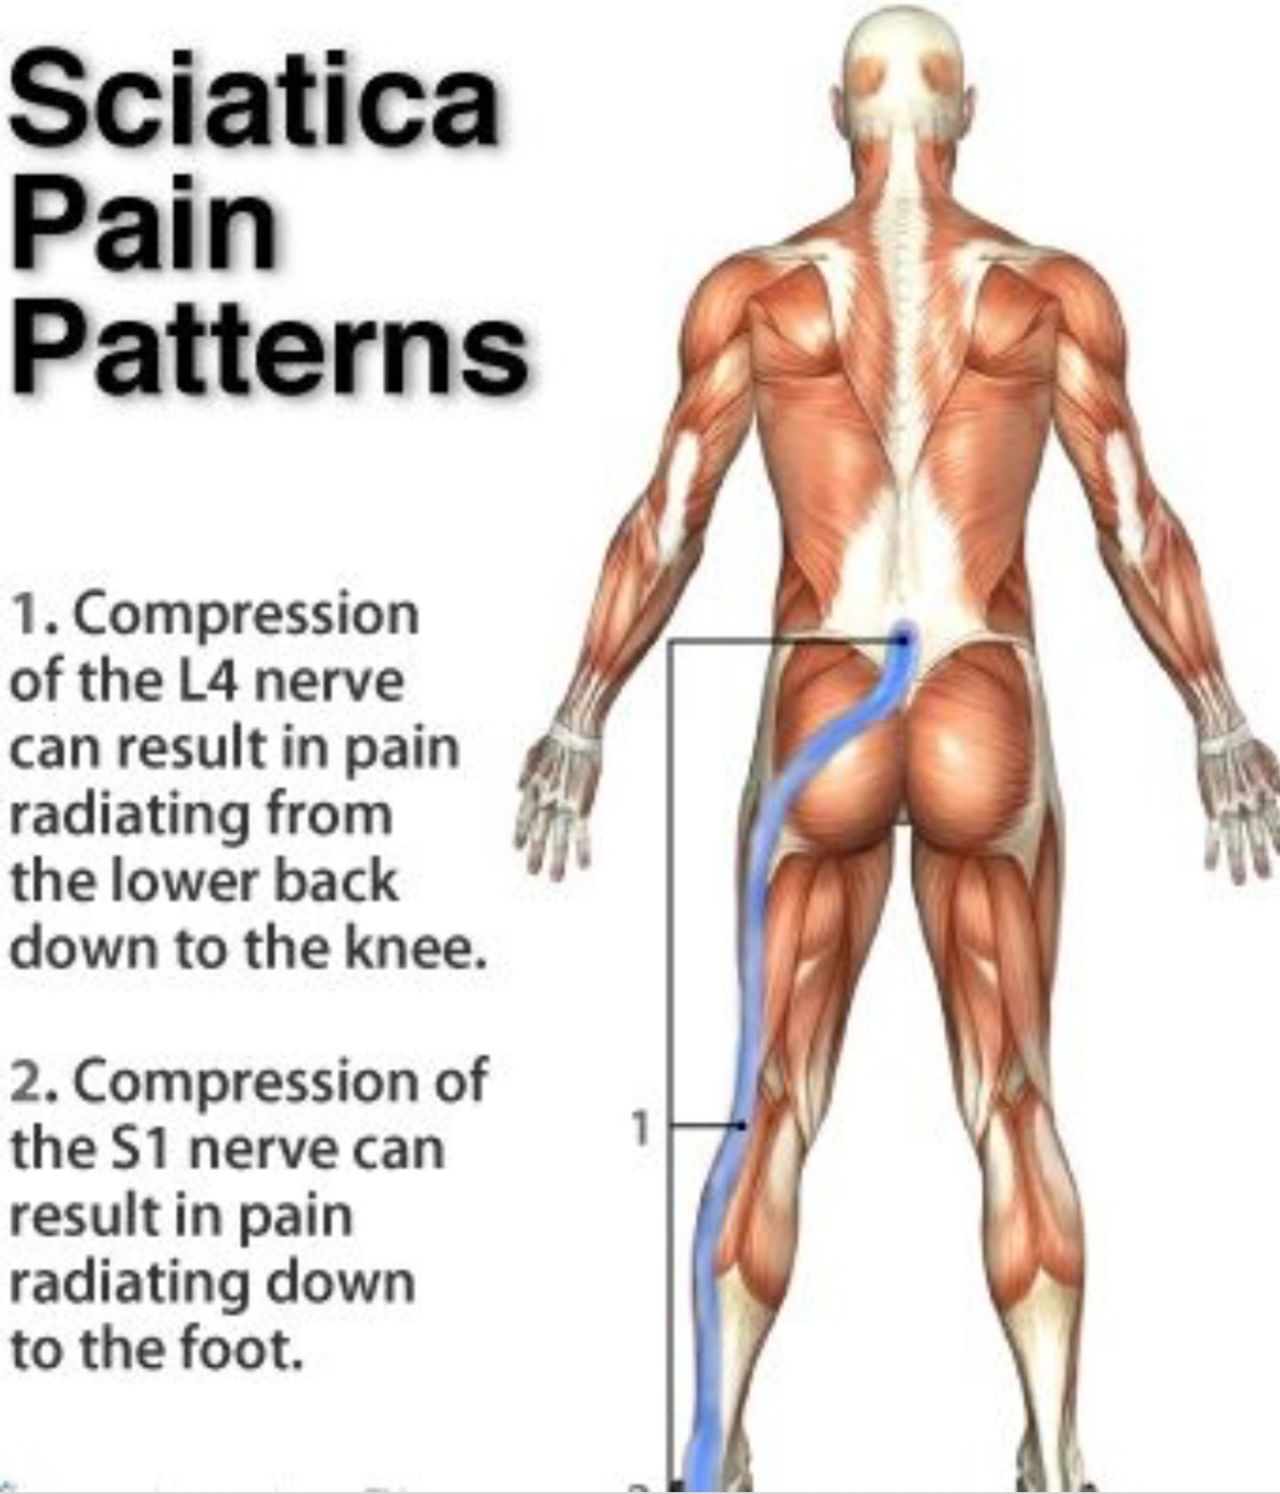 can massage help with sciatica?